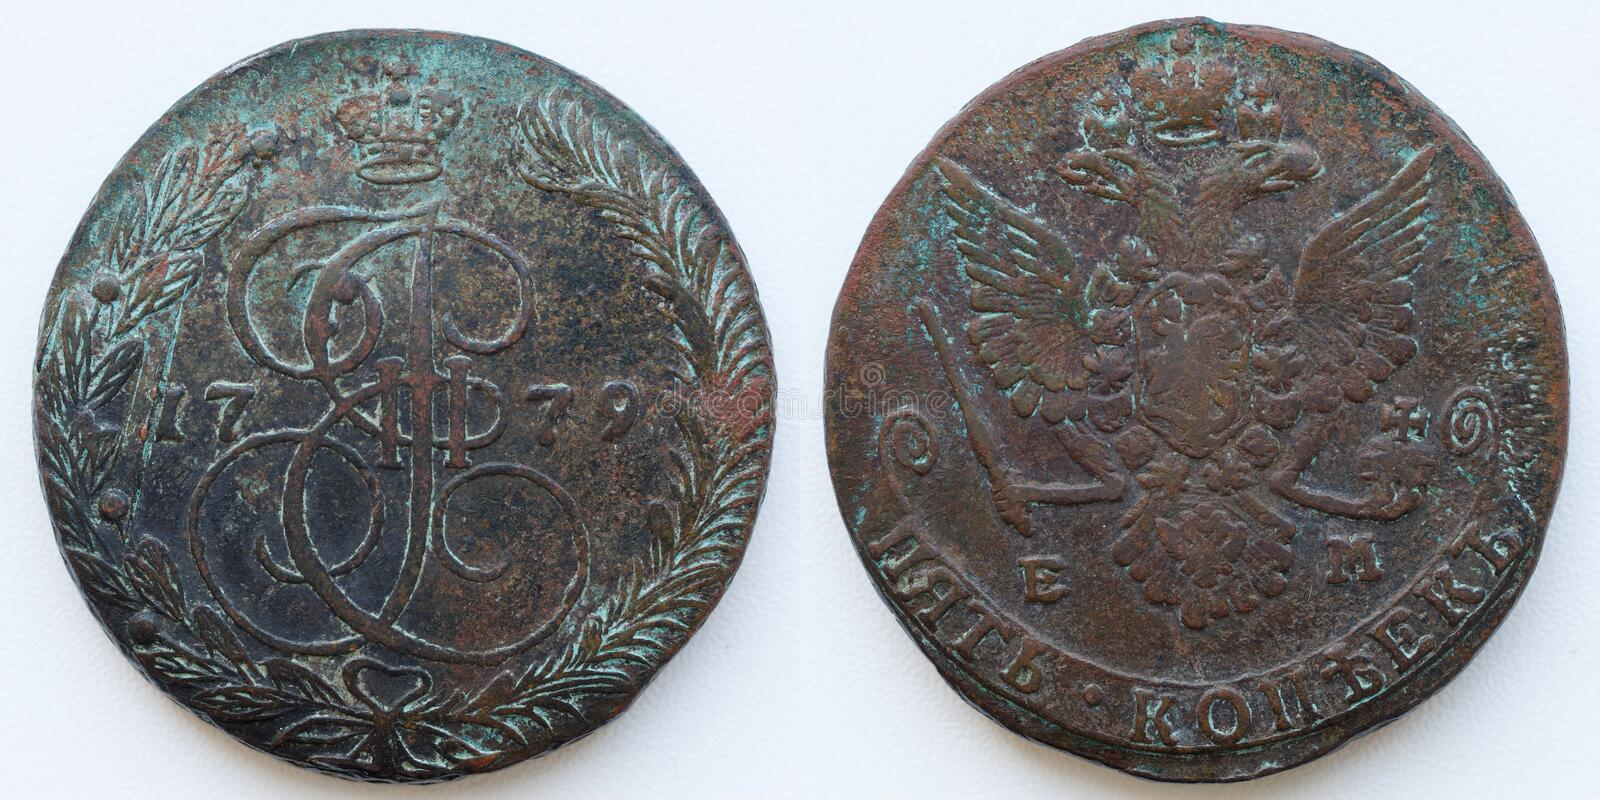 Antique russian coin 5 kopecks 1779. Eagle EM dark brown copper both sides stock image